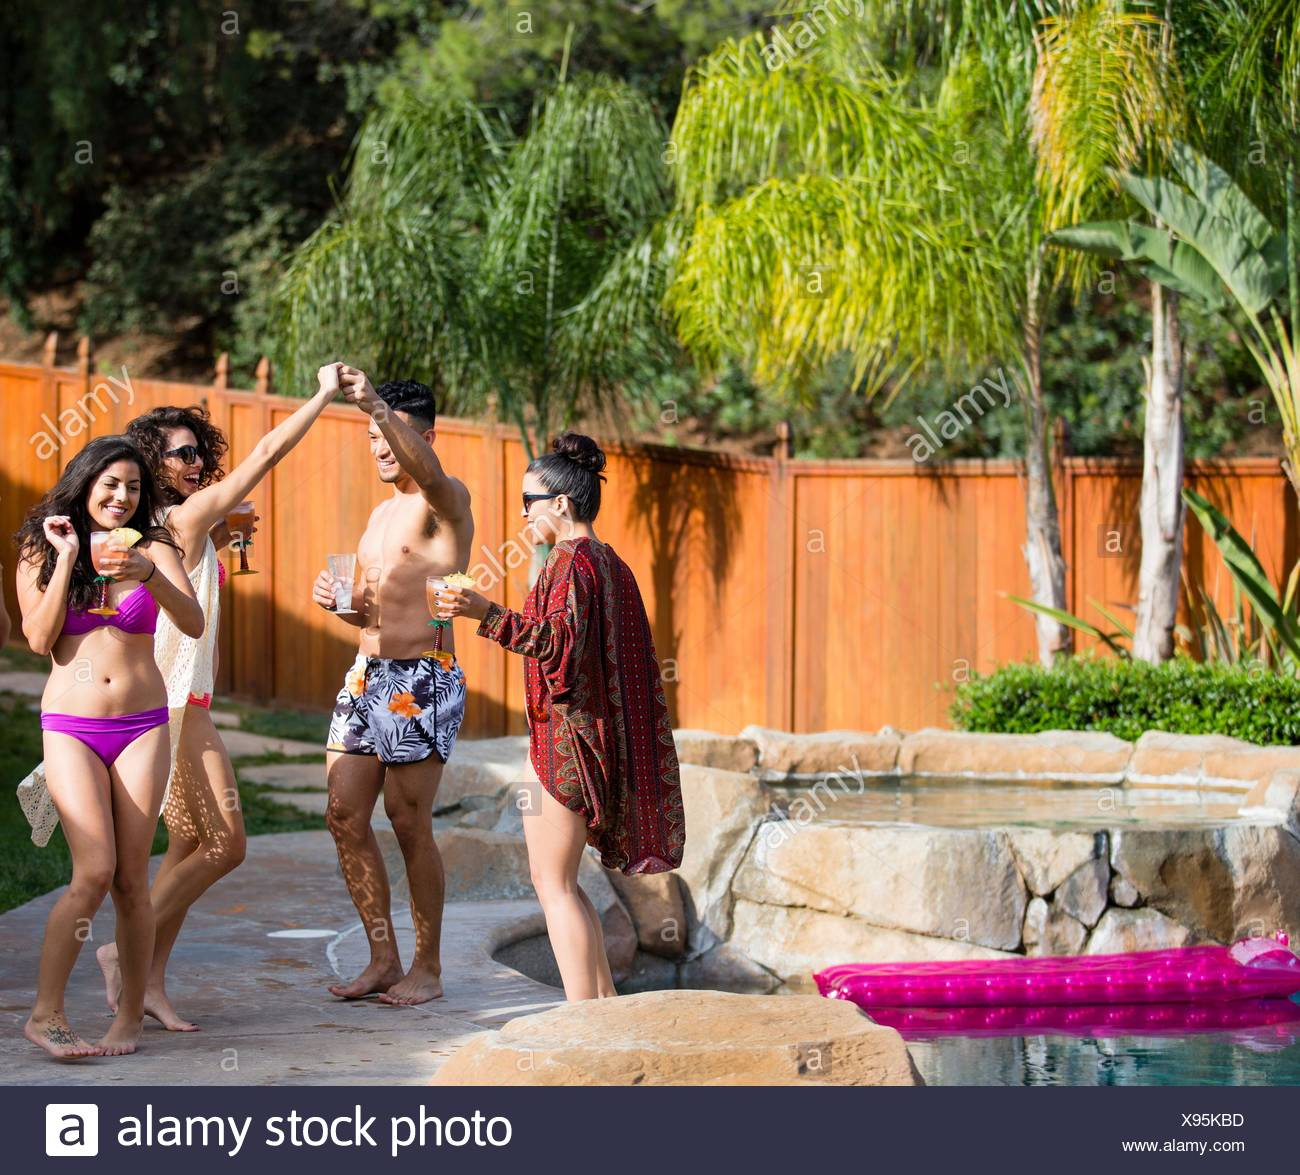 Young man dancing with sister in garden - Stock Image